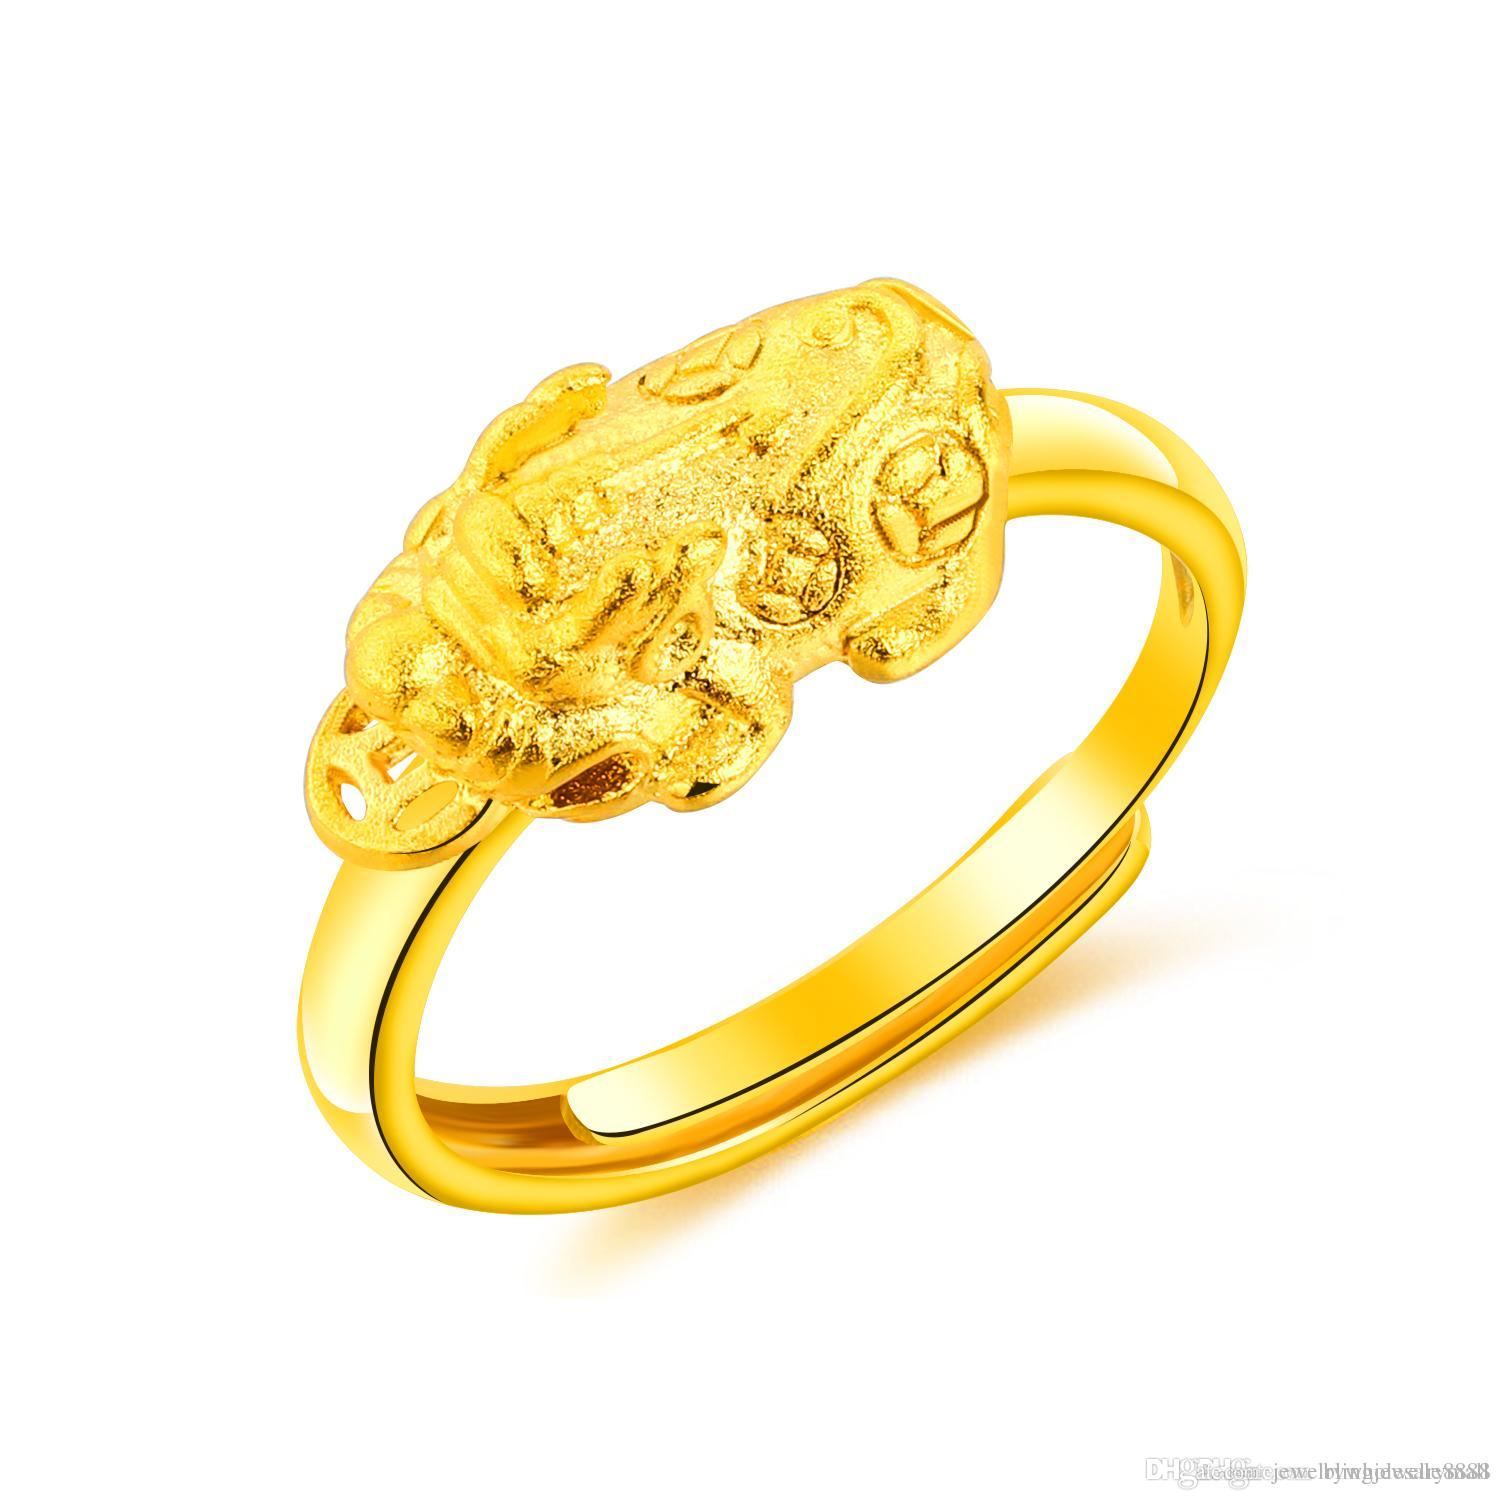 owned alaisallah rings wm pre ring jewellery indian gold